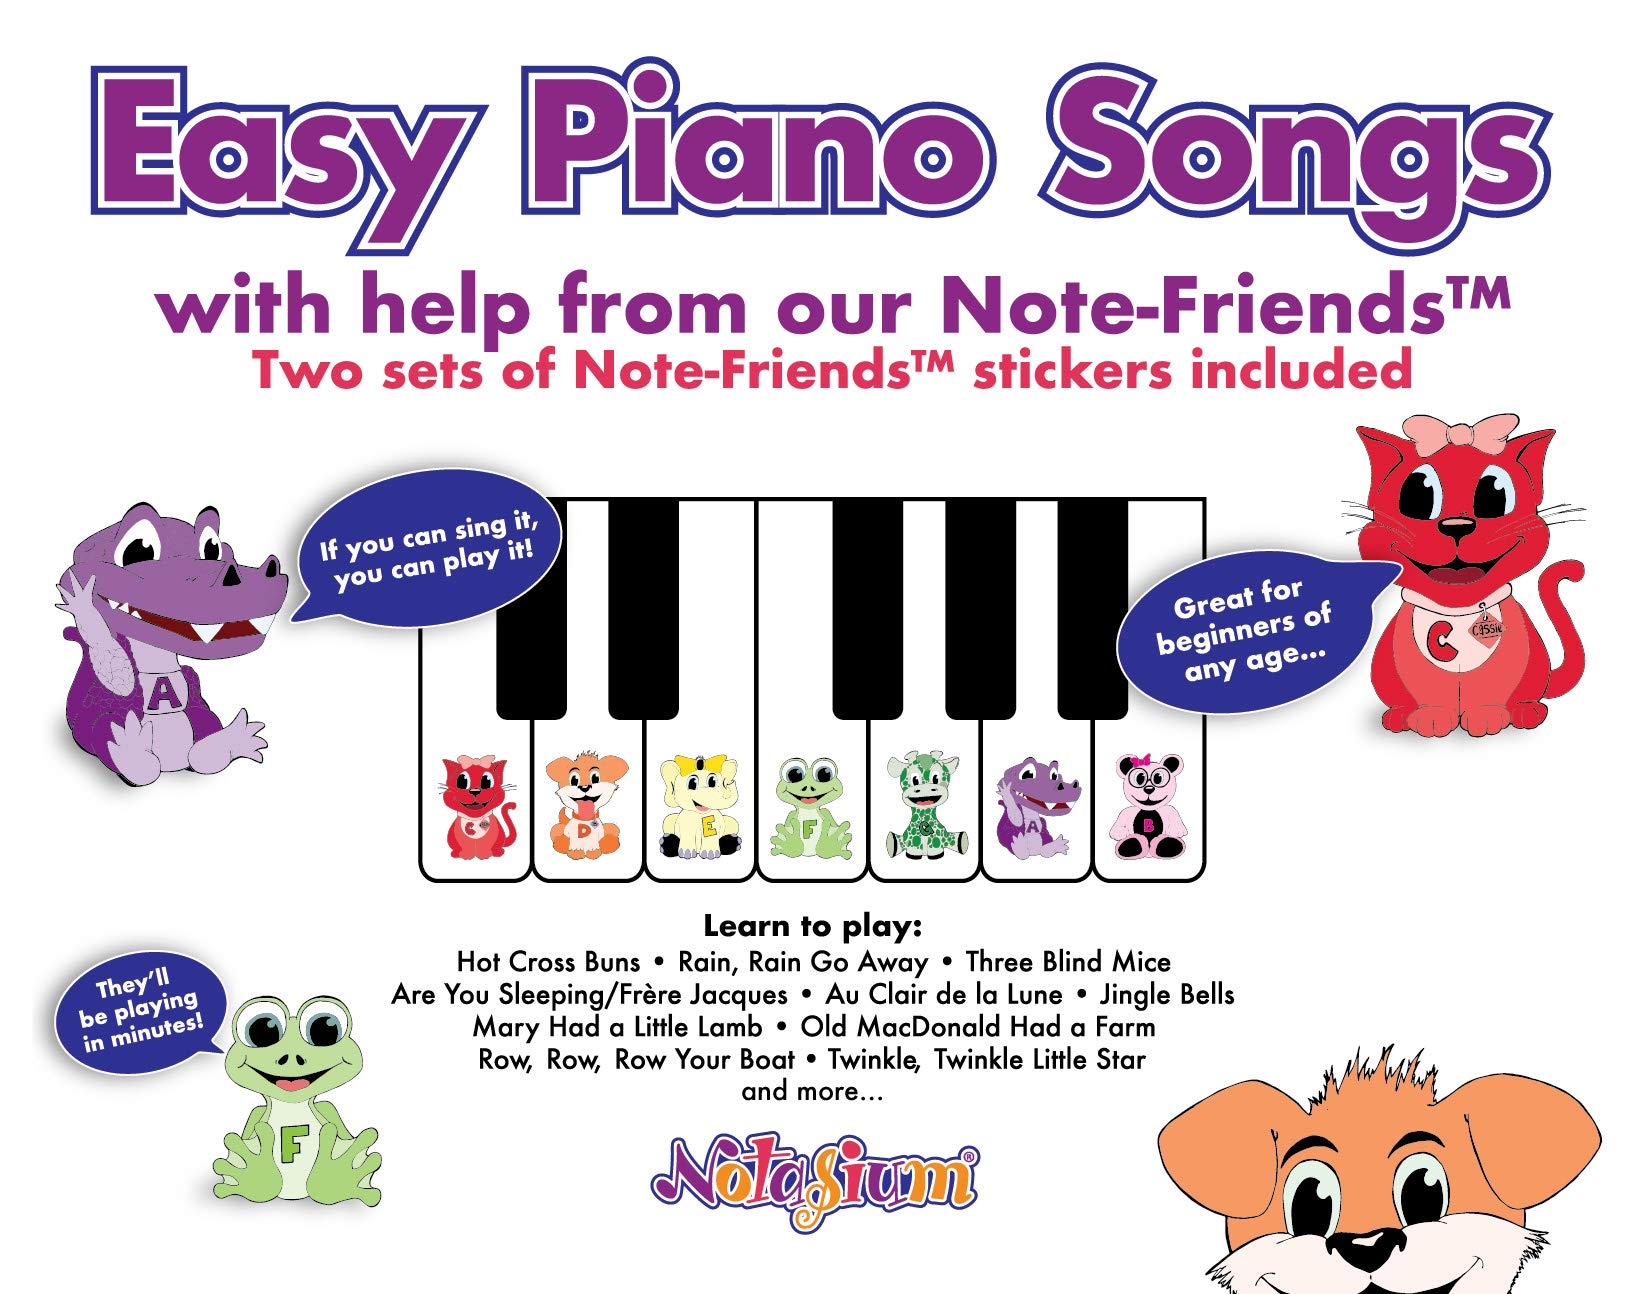 Easy Piano Songs book for kids with stickers: LLC Notasium